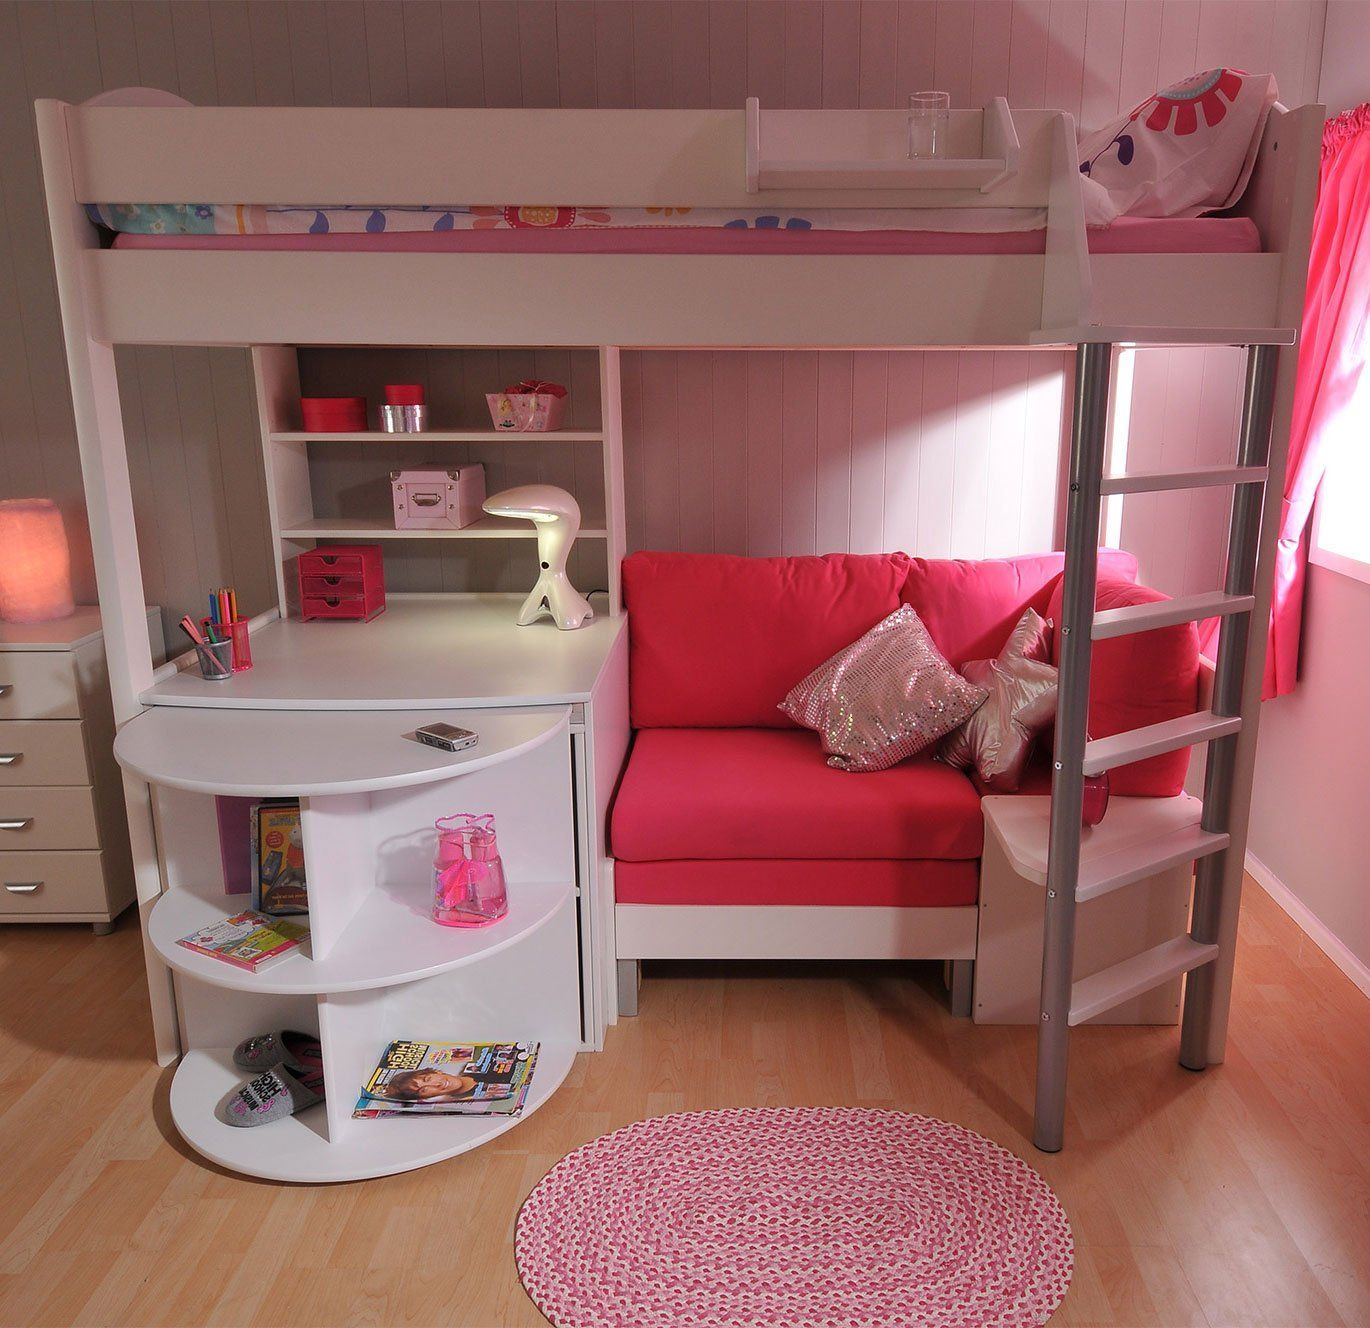 Stompa Casa 4 White Loft Bed With Desk And Pink Sofa Bed Amazon